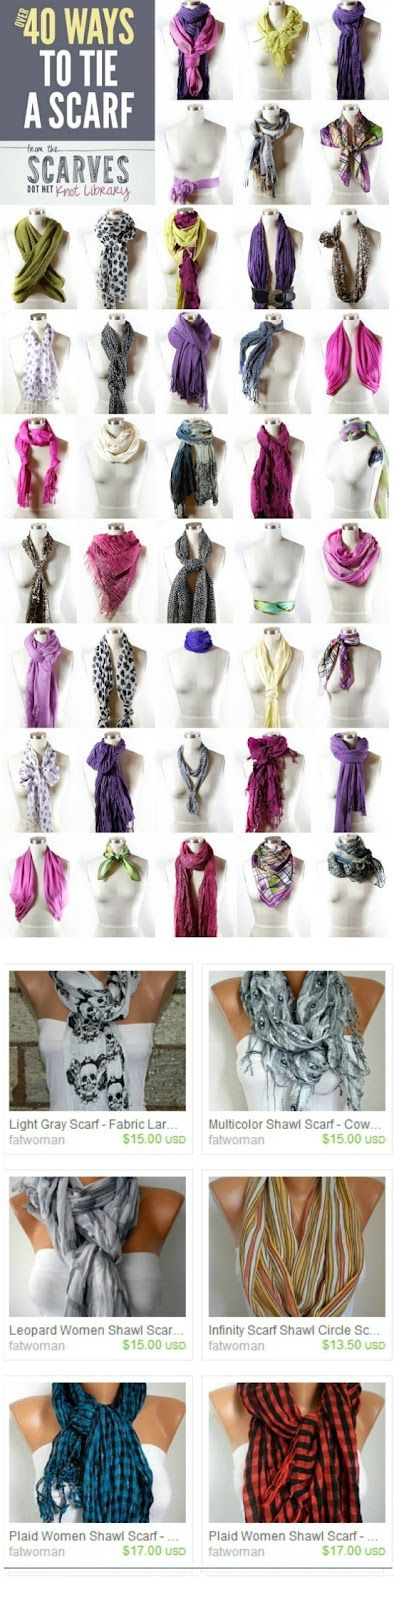 Woo! New ways to wear scarves